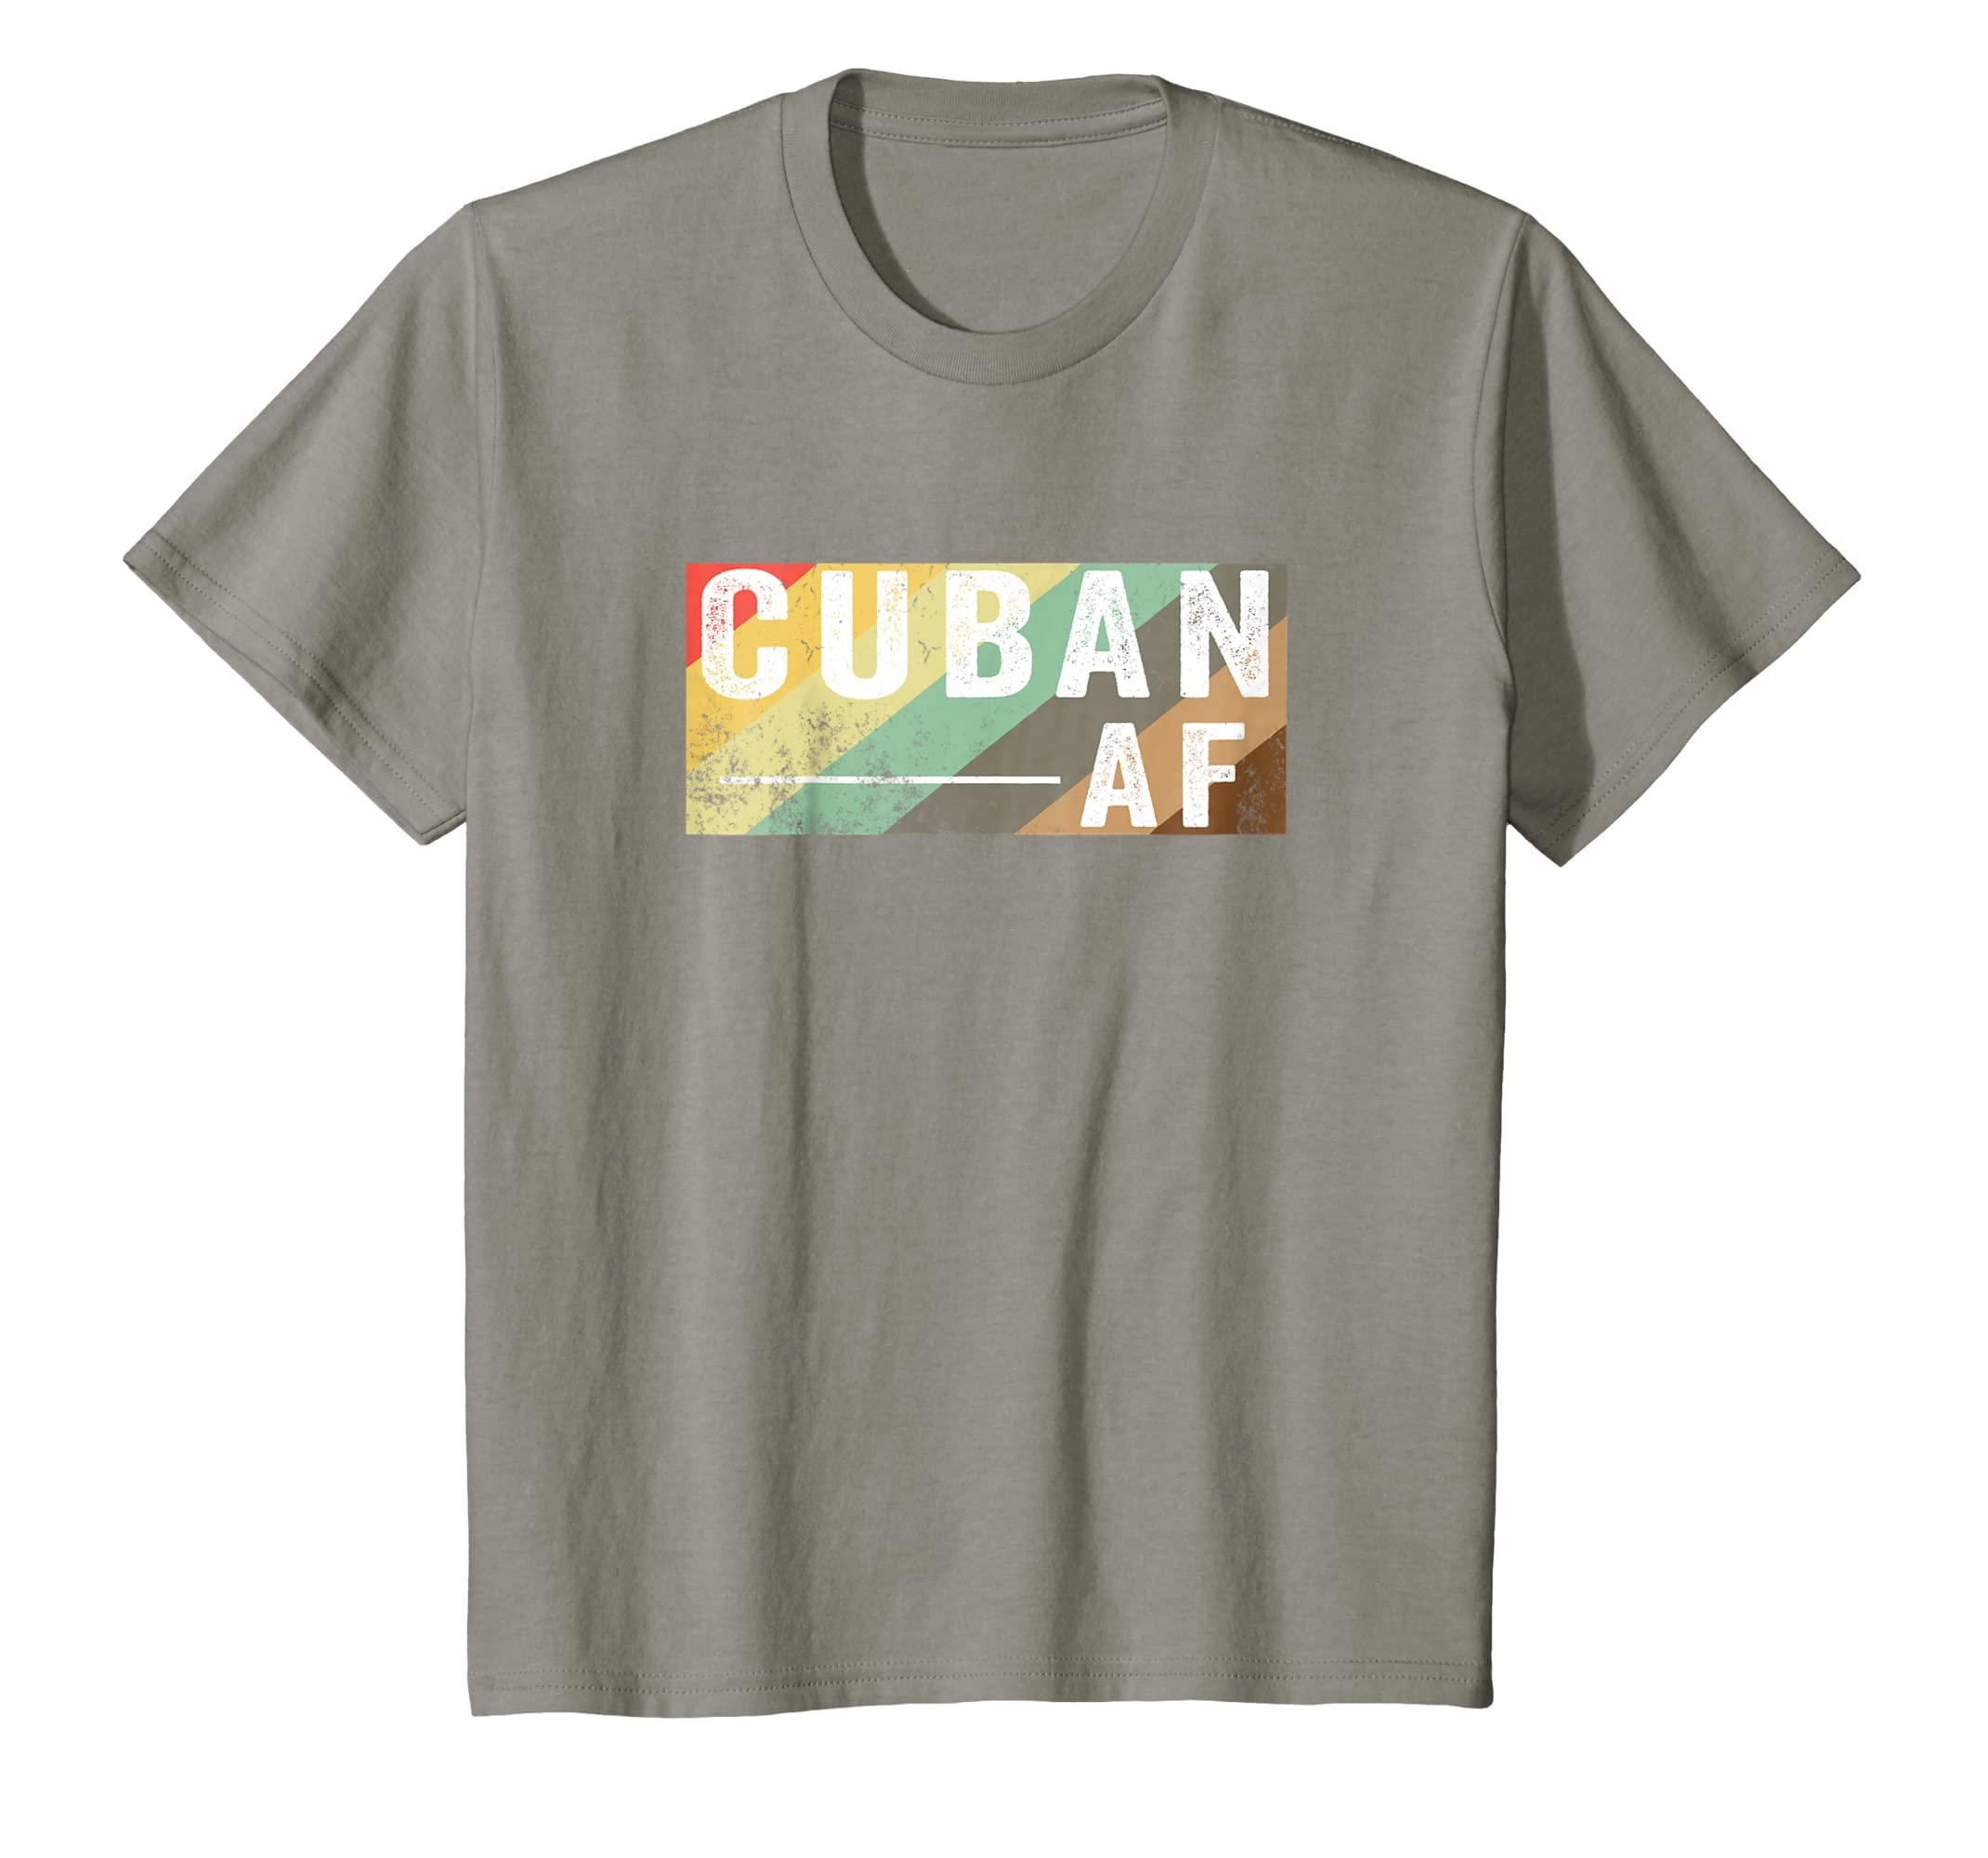 Amazon.com: Vintage Retro Cuban AF T shirt Funny Old School 70s & 80s: Clothing